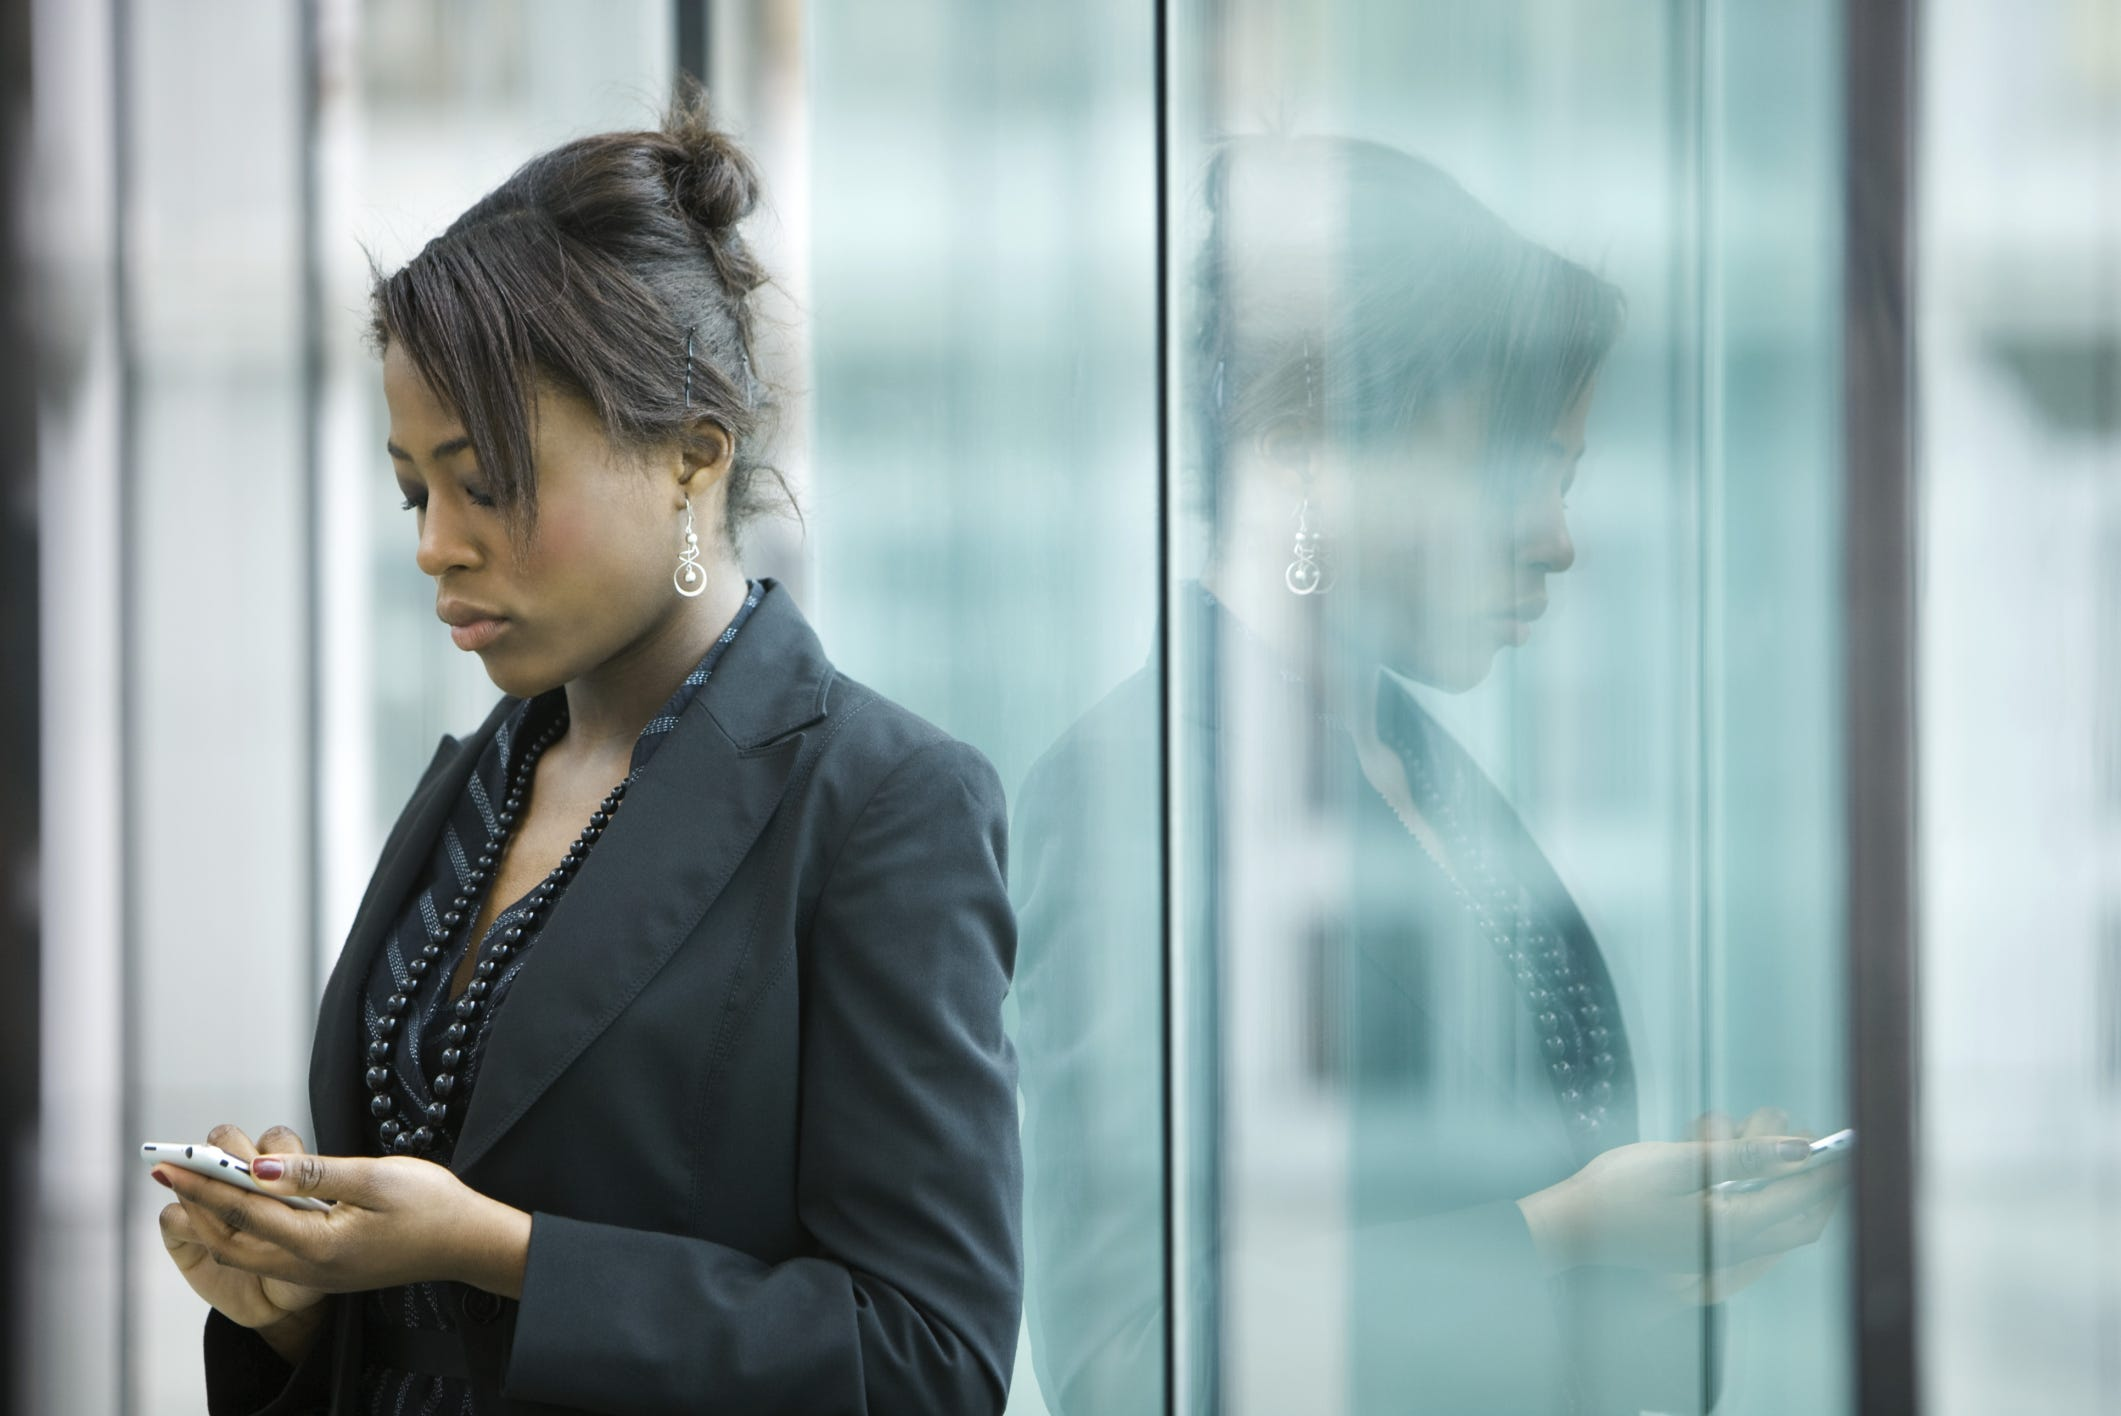 5 tips for women to snare a bigger salary